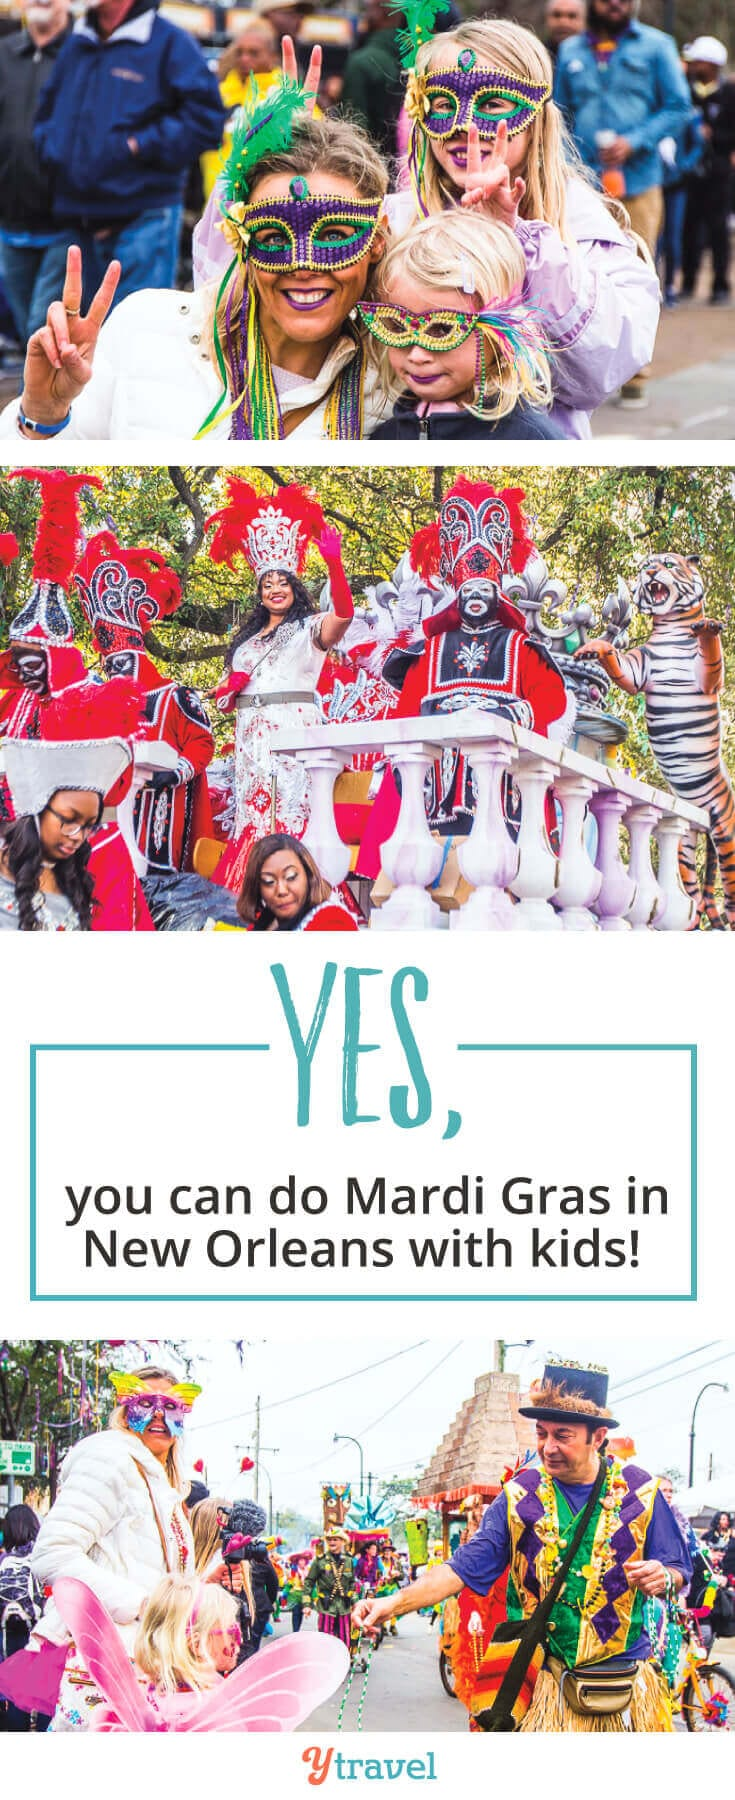 New Orleans Mardi Gras - Are you planning a trip to New Orleans for the Mardi Gras Festival? Wondering if you can do Mardi Gras with kids? This guide offers tips on Mardi Gras costumes, Mardi Gras dates, what Mardi Gras Parades to see, tips for enjoying the festival with kids, and much more!